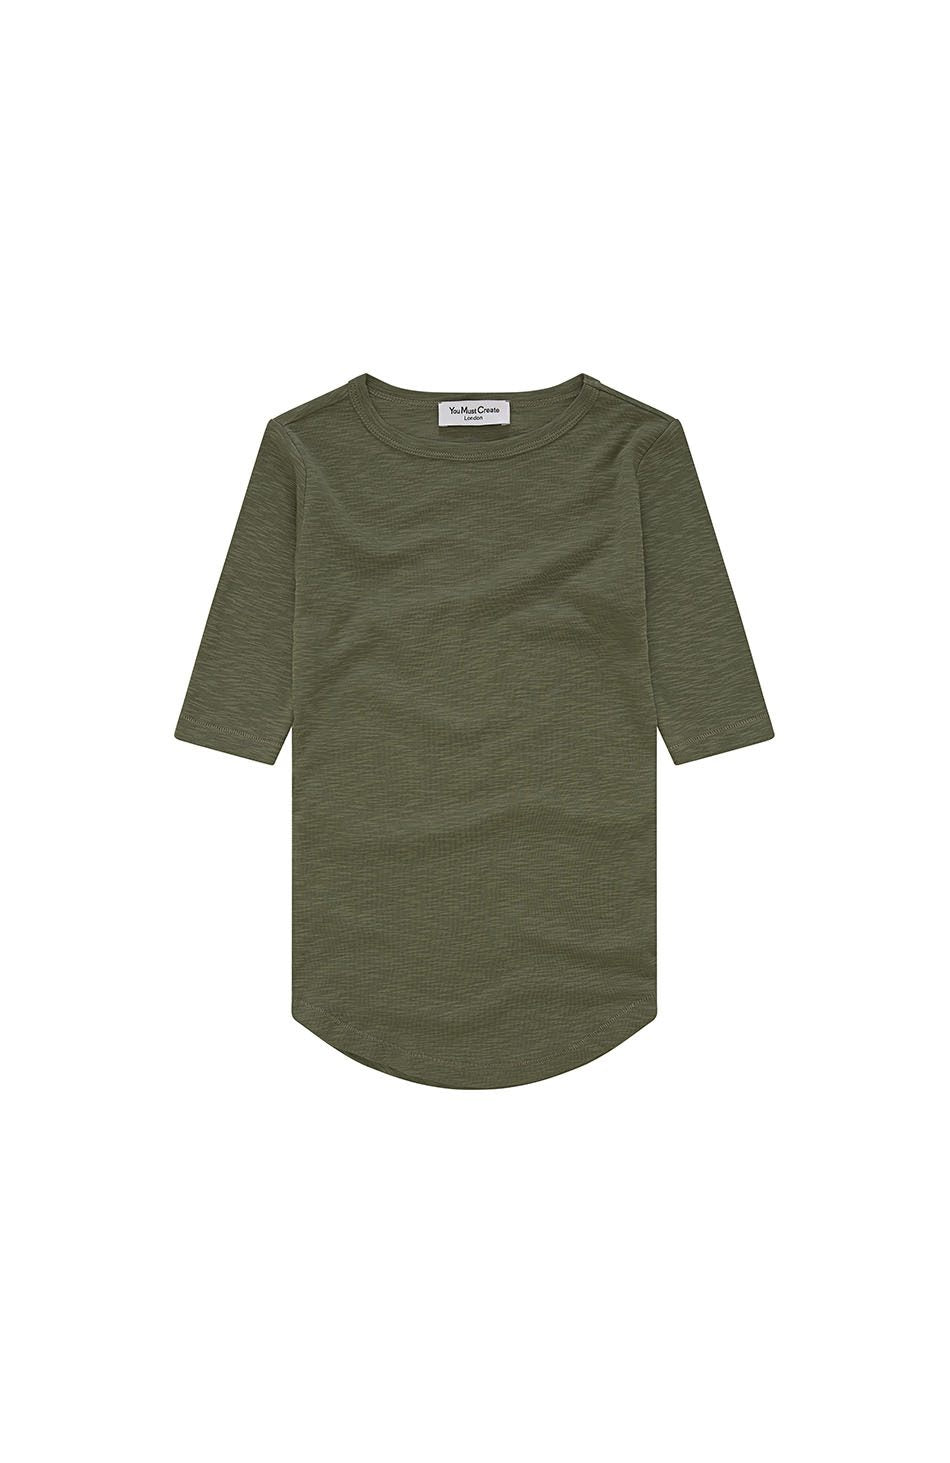 Charlotte T-Shirt in Olive